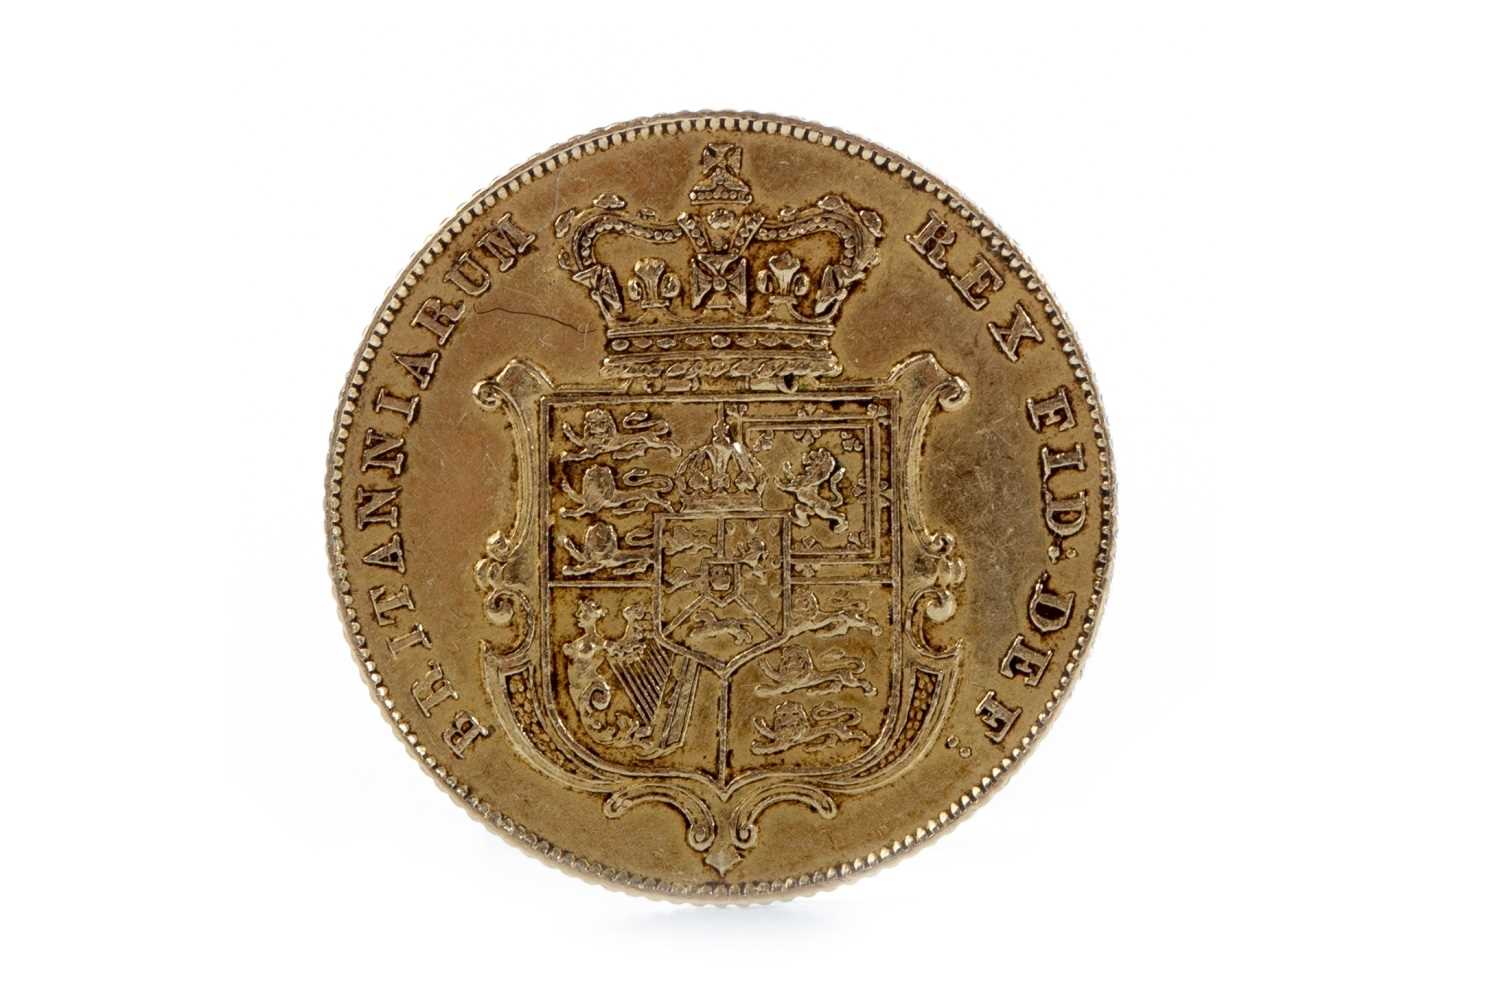 Lot 533 - A GOLD SOVEREIGN, 1826